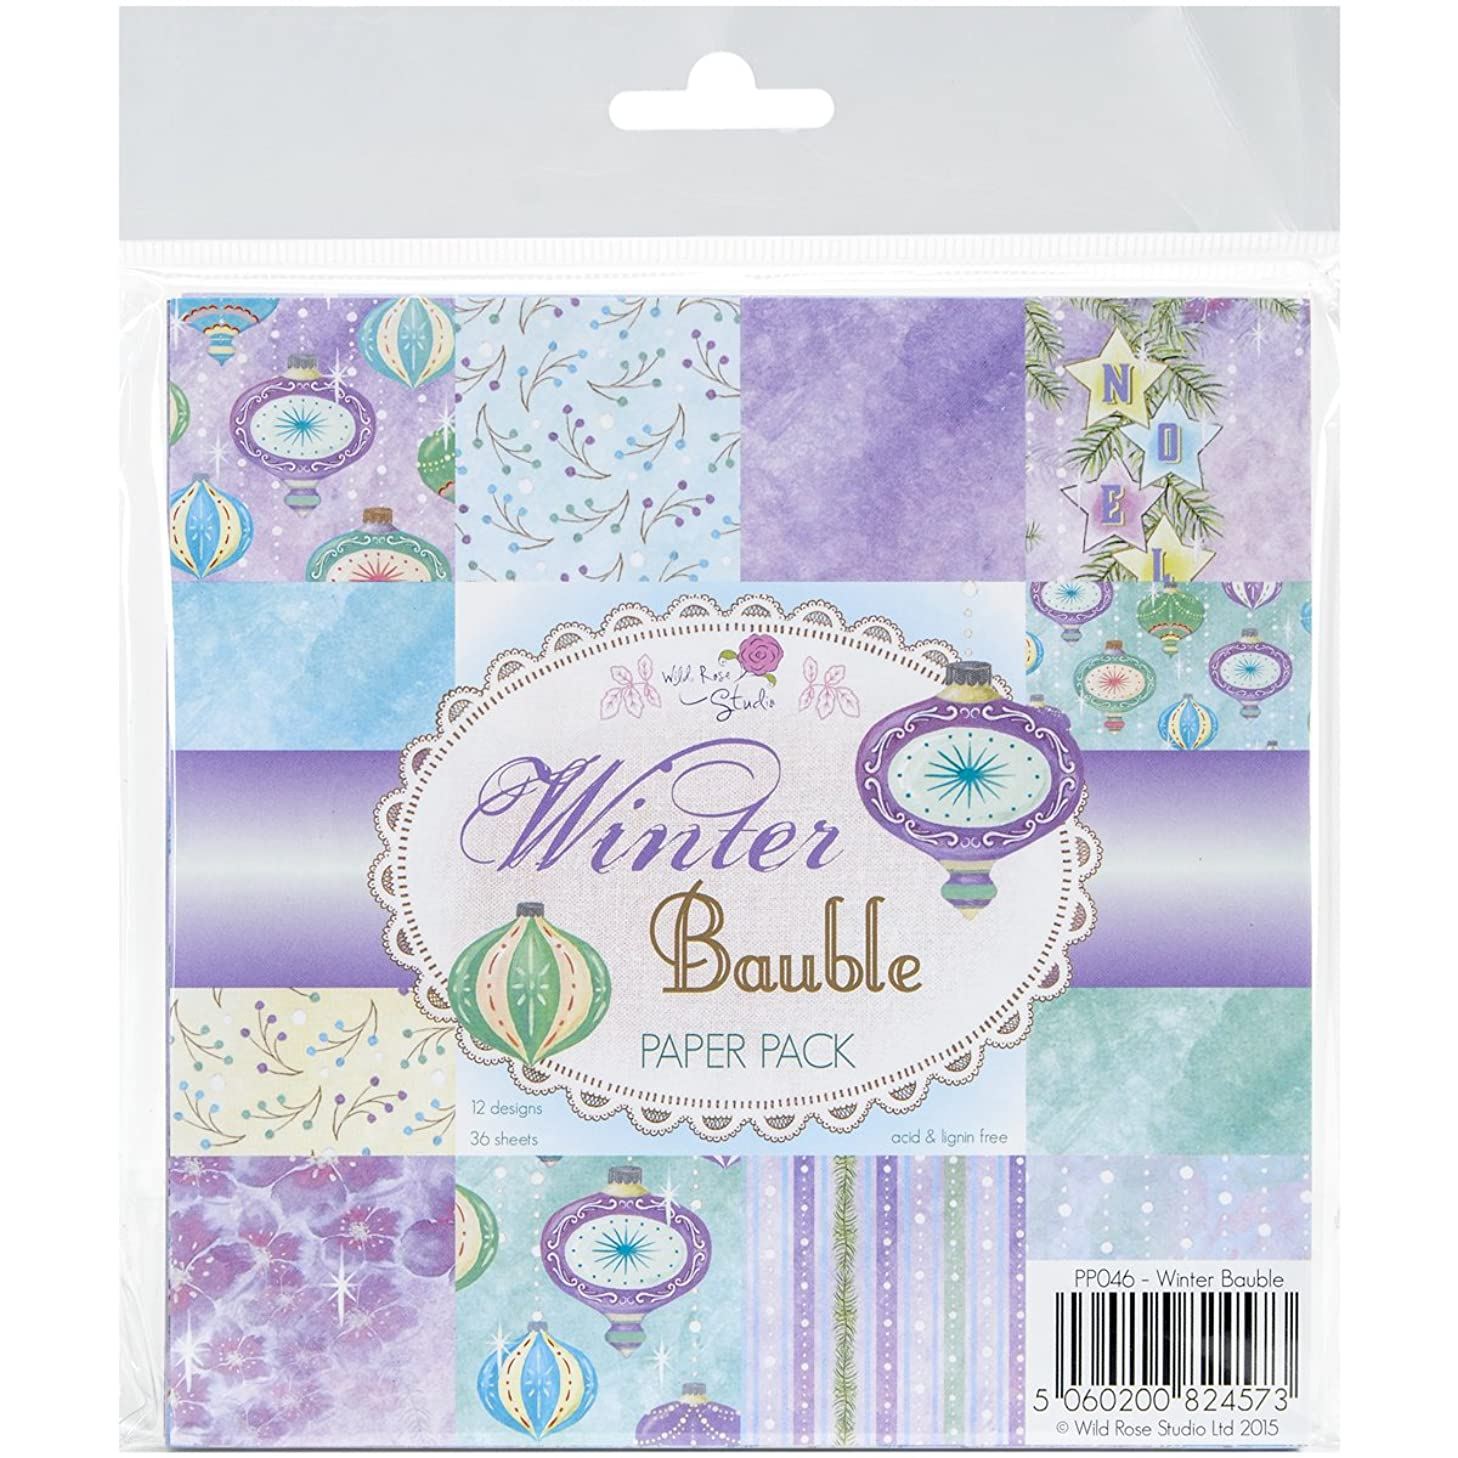 Wild Rose Studio Winter Bauble Ltd. Paper Pack, 6